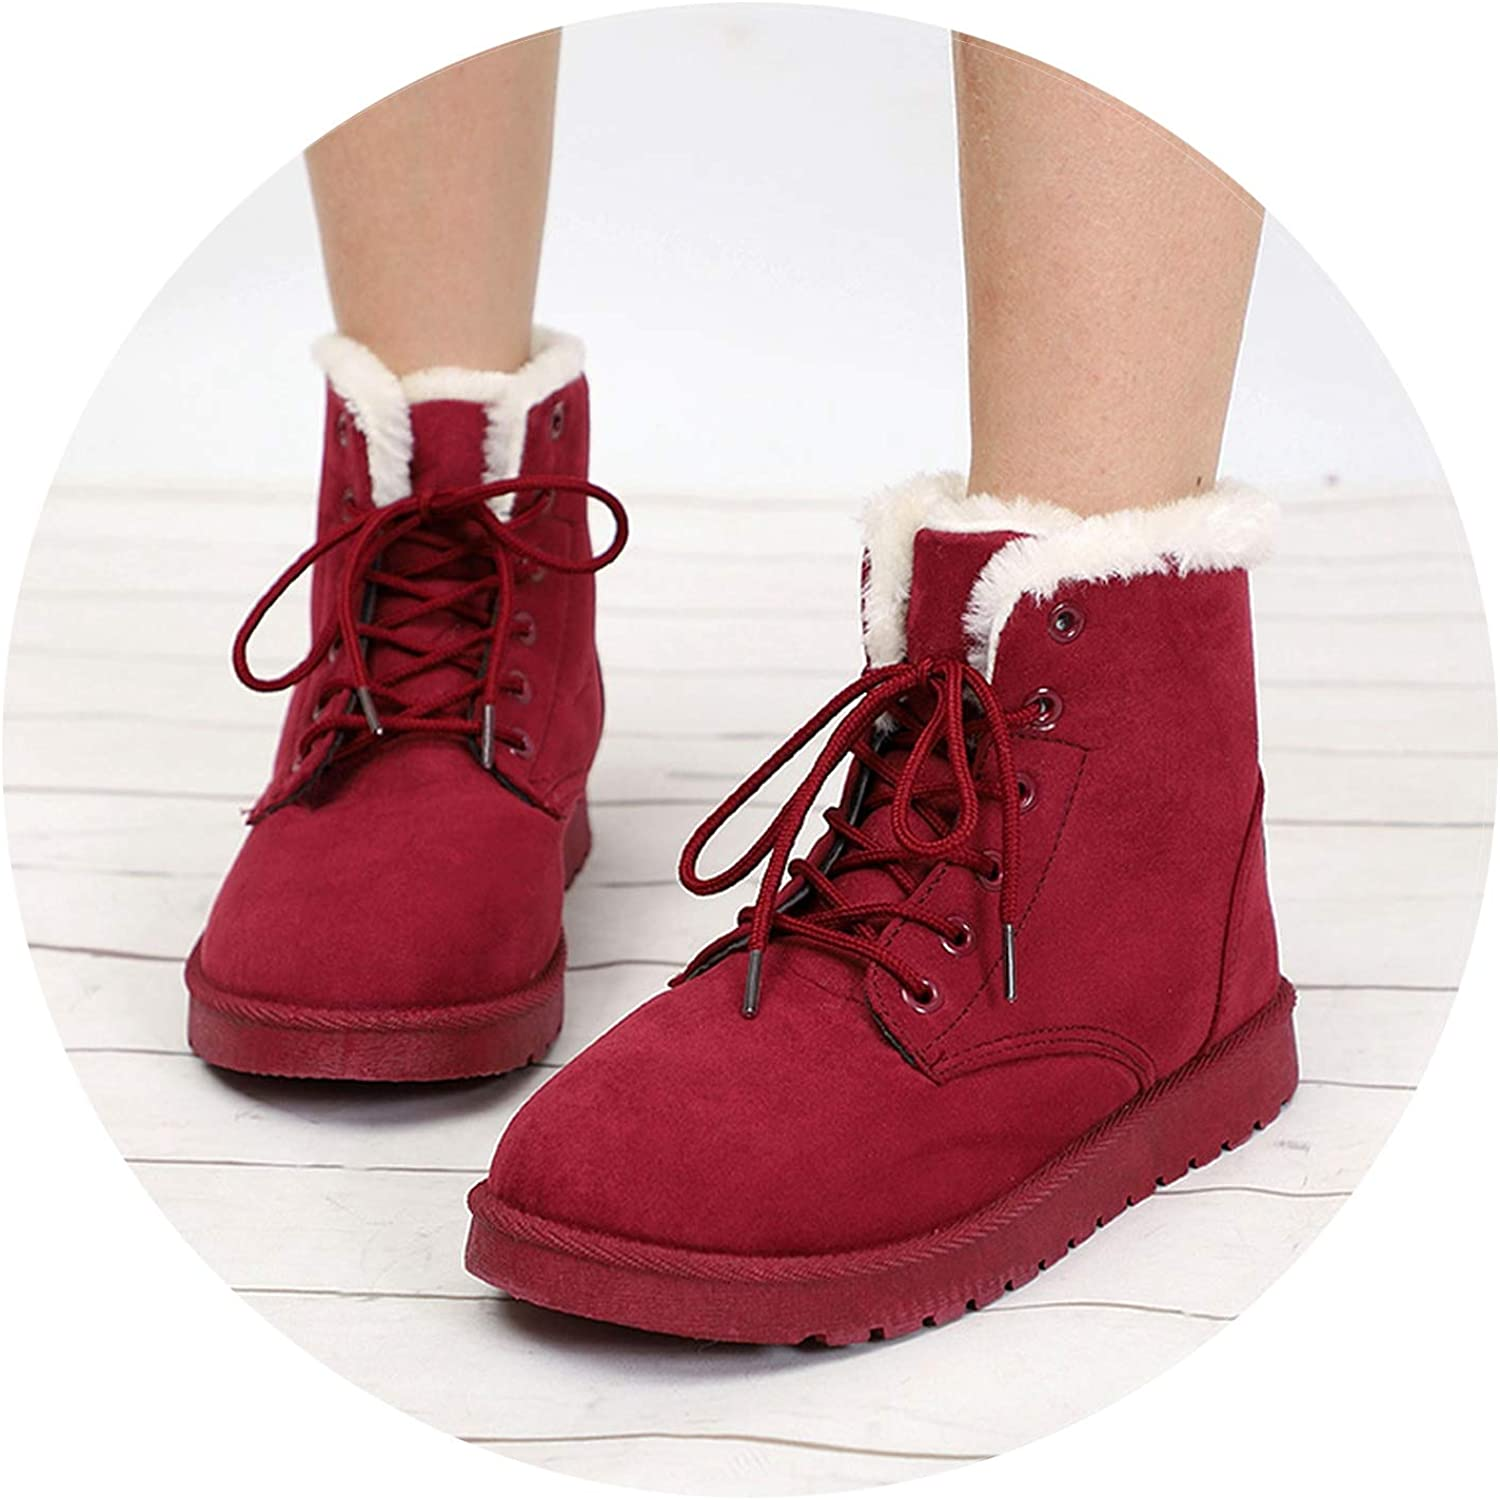 Women Winter Snow Boots Warm FlatPlatform Lace Up shoes Flock Fur Suede Ankle Boots